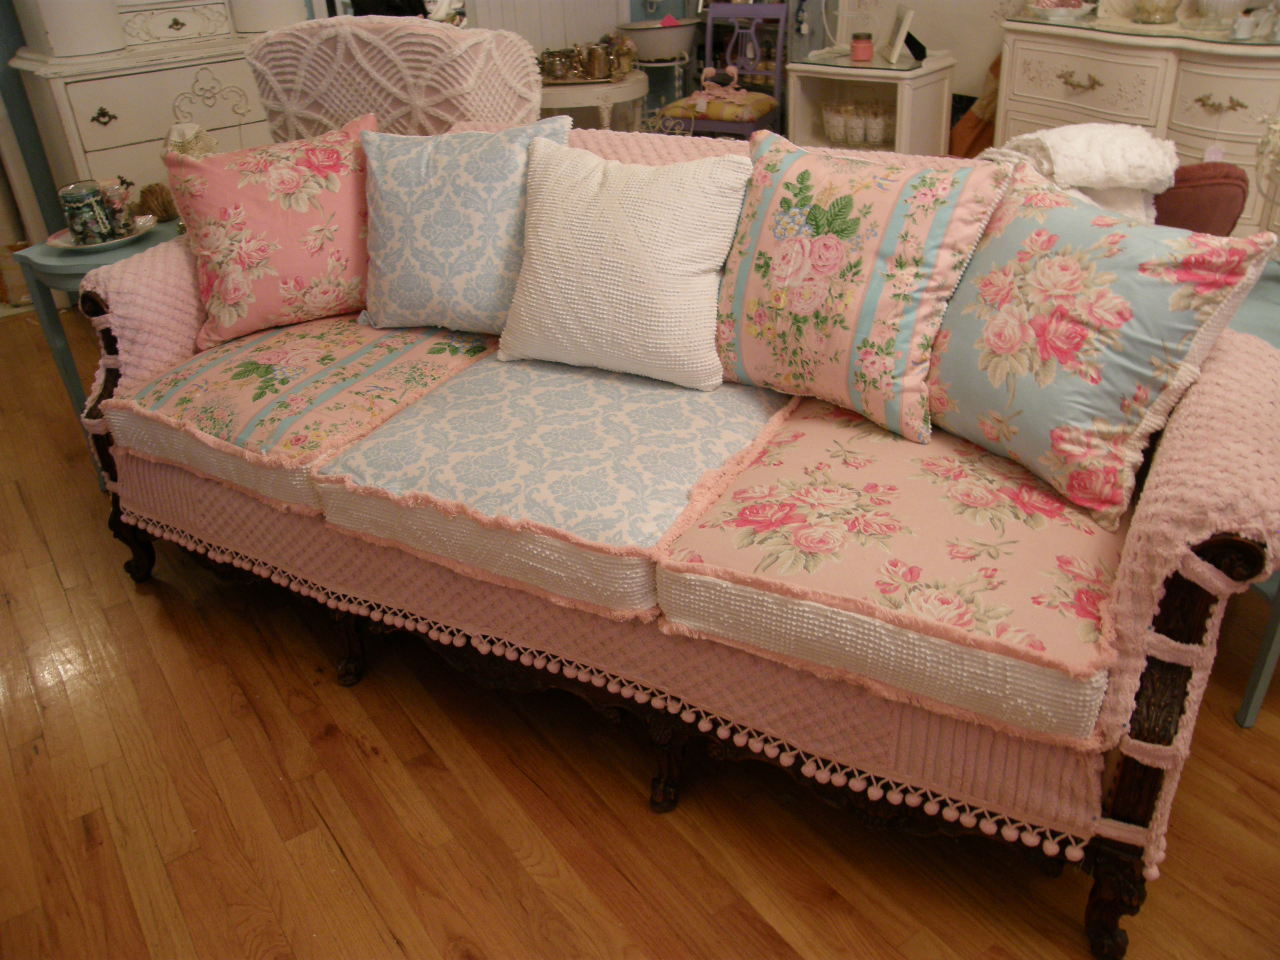 Shabby Chic Sofa Bed Uk Stickley Review Old Bedspread And Things On Pinterest Bedspreads